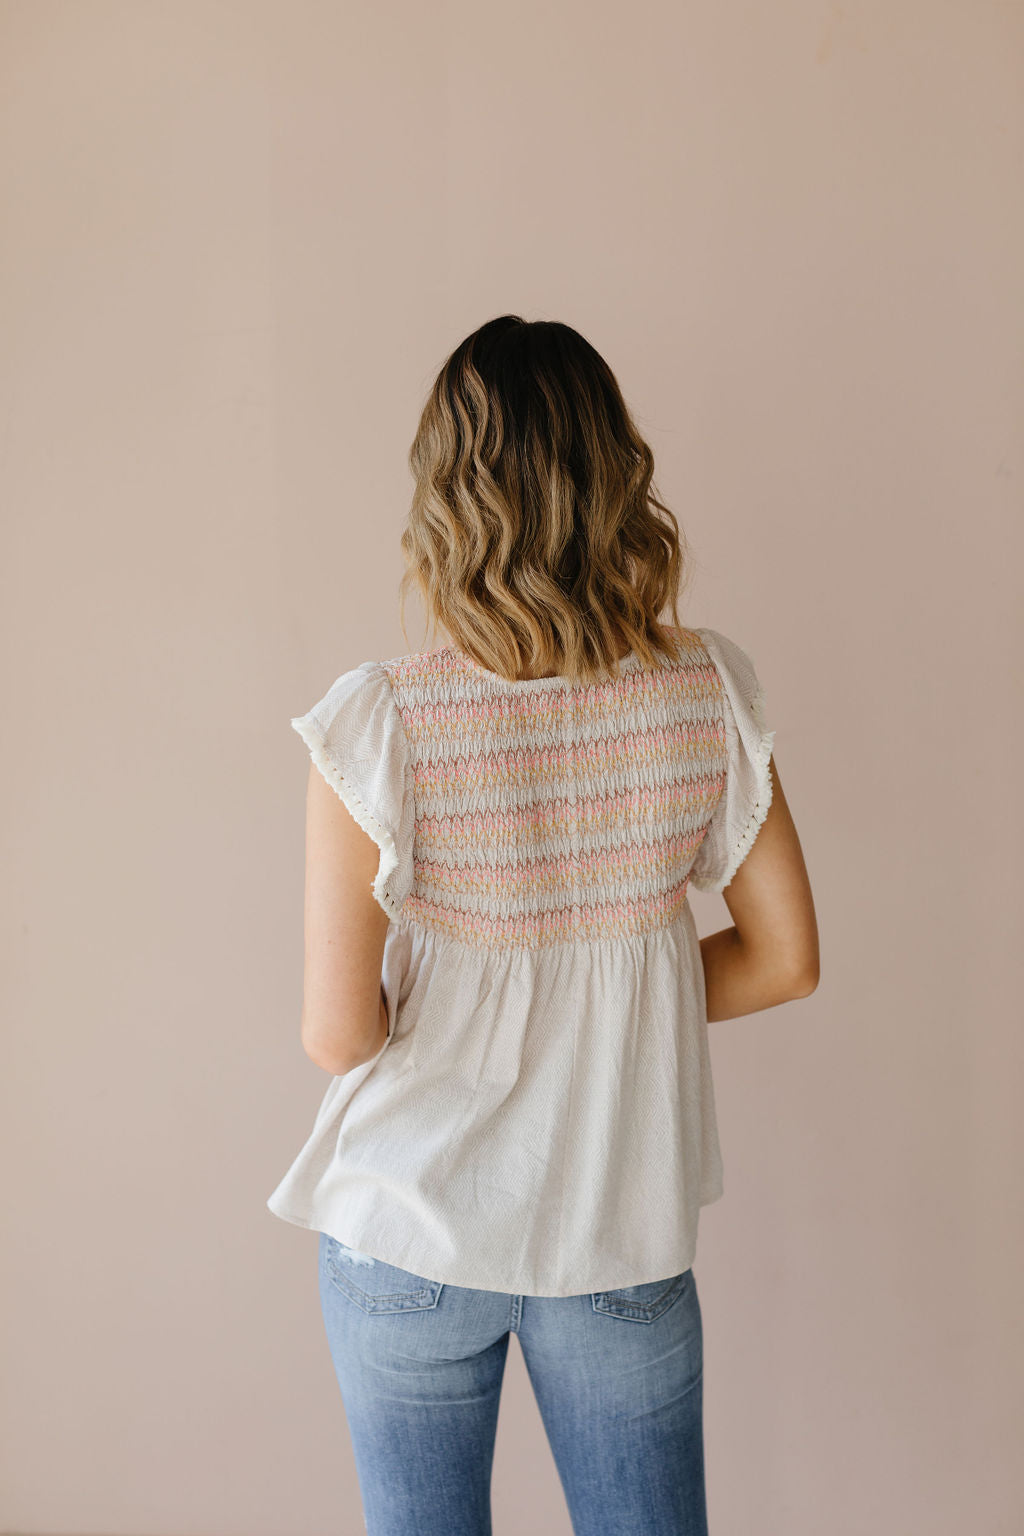 The Bernadette Top